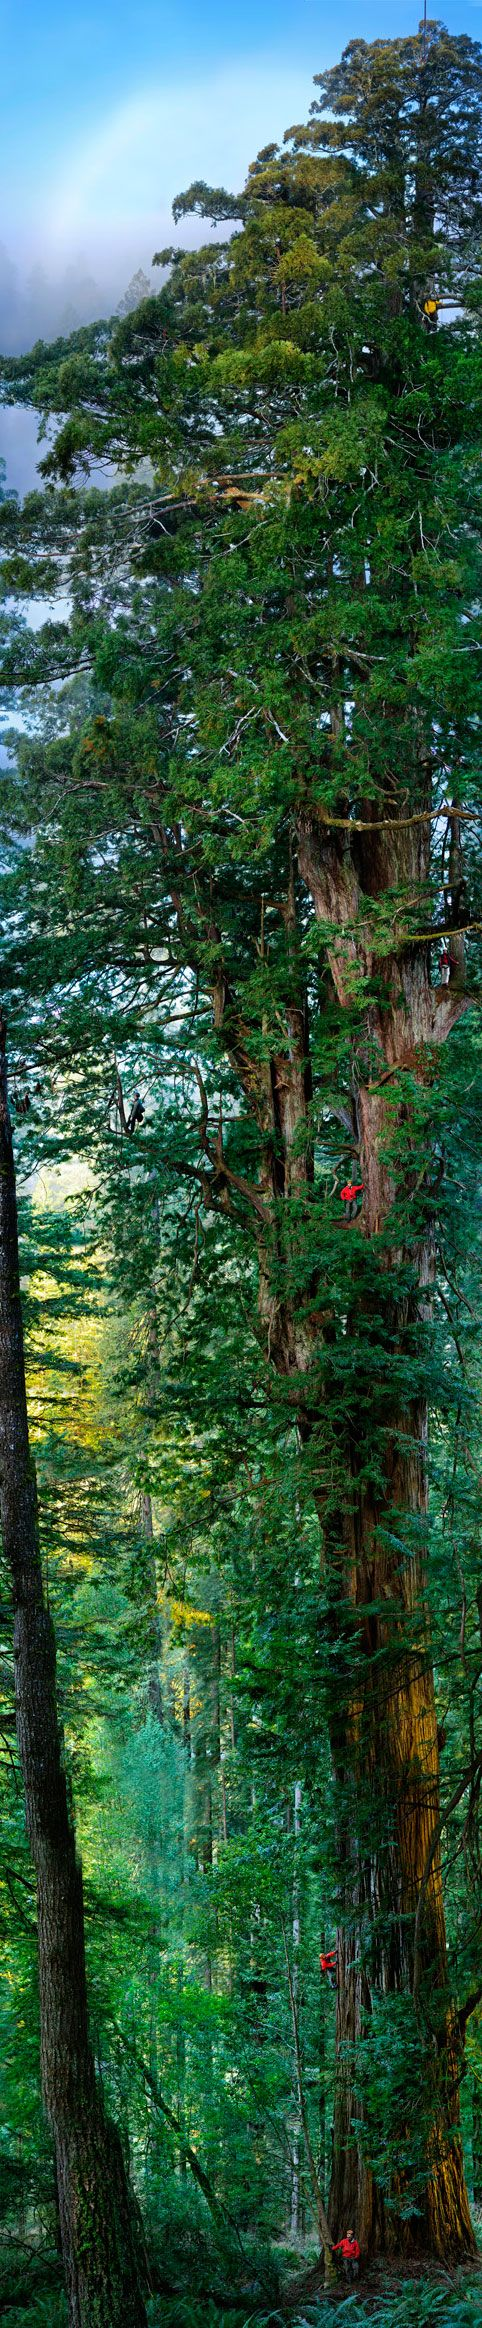 ✯ Giant Sequoia: